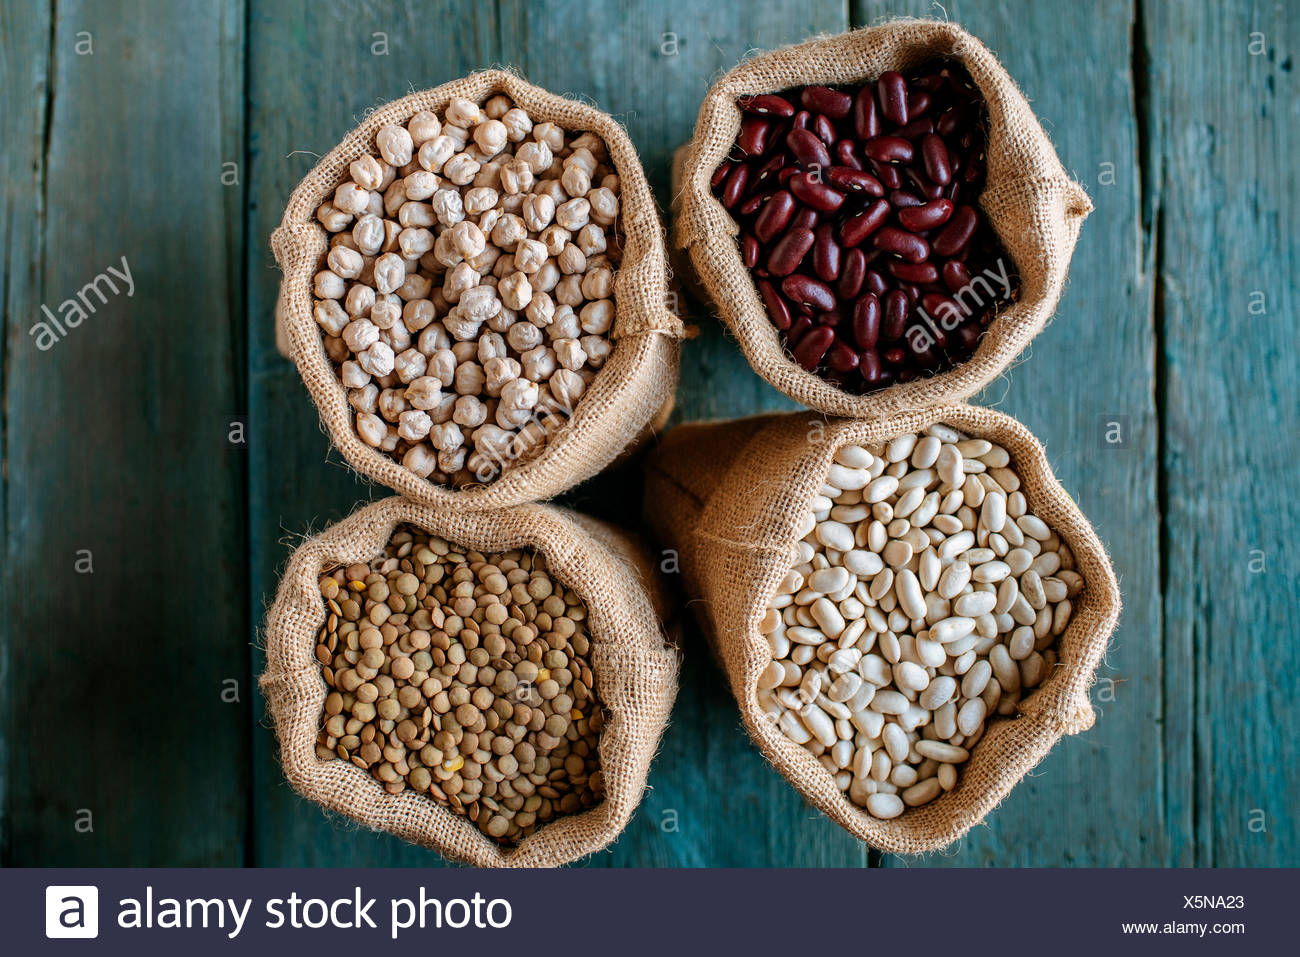 Four sacks of dried brown lentils, chickpeas and red and white beans on wood Stock Photo